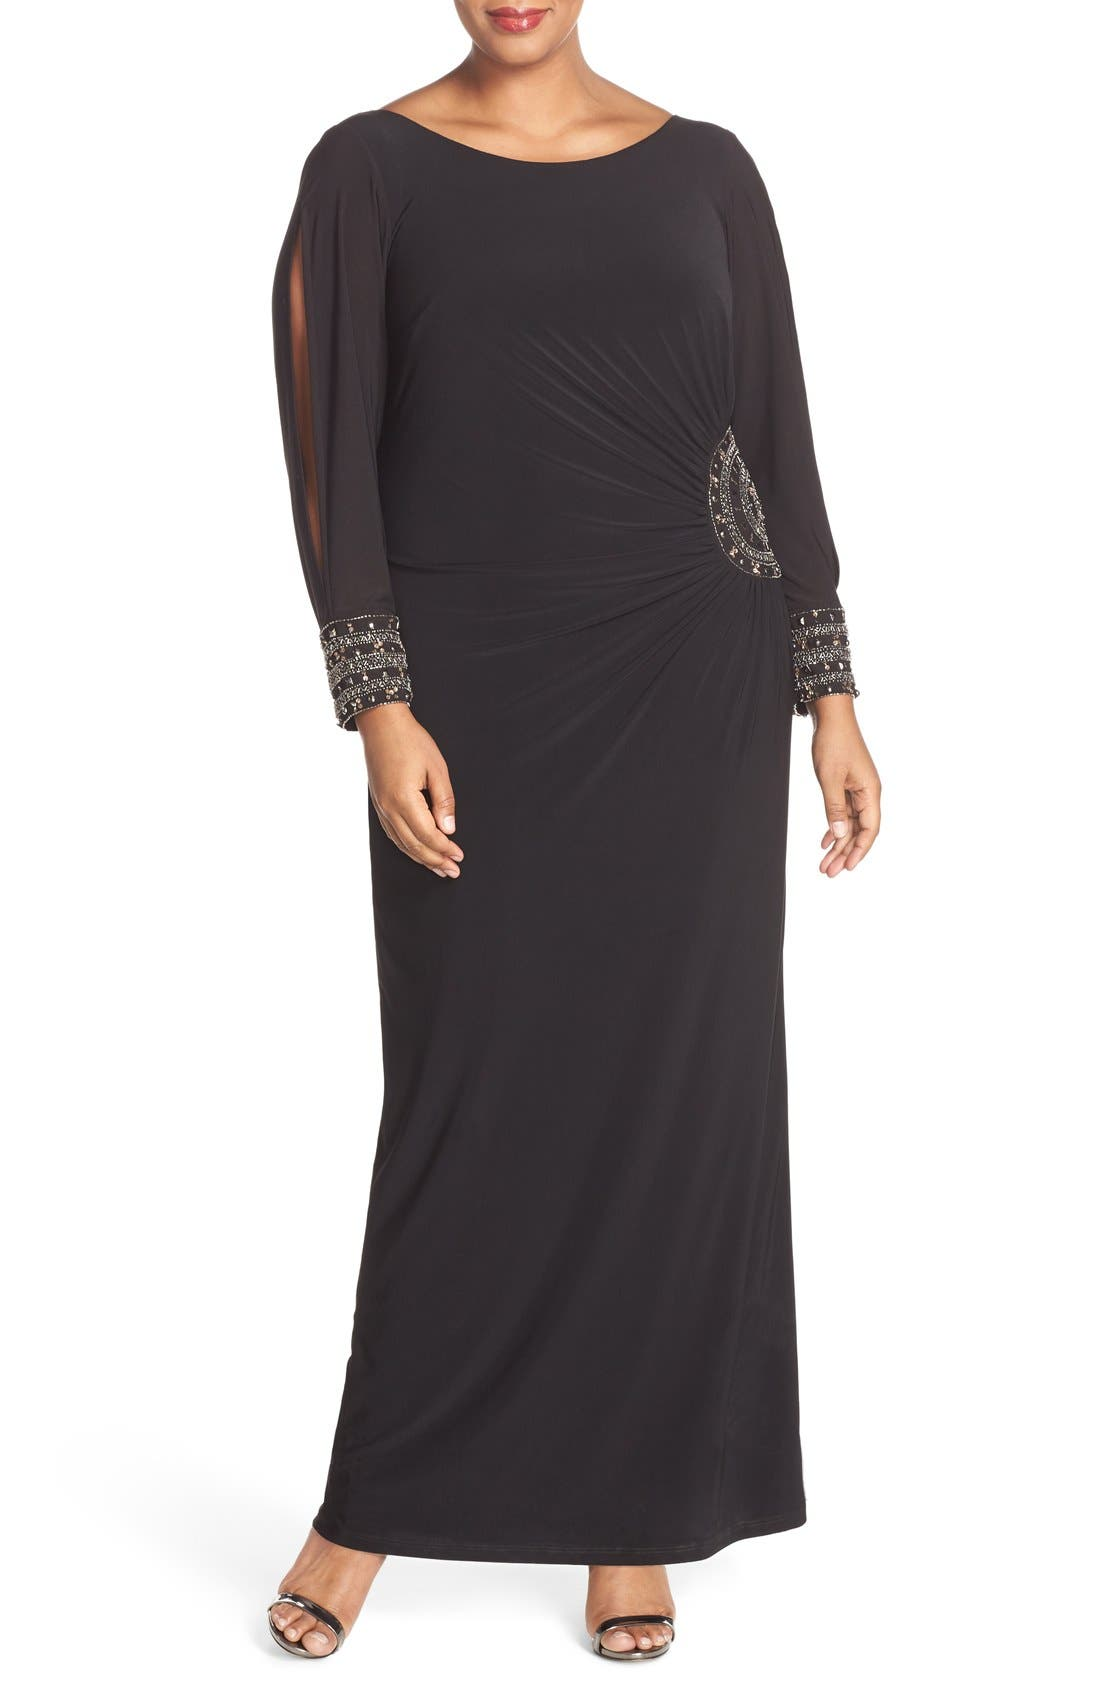 Alternate Image 1 Selected - Xscape Embellished Stretch Jersey Long Dress (Plus Size)